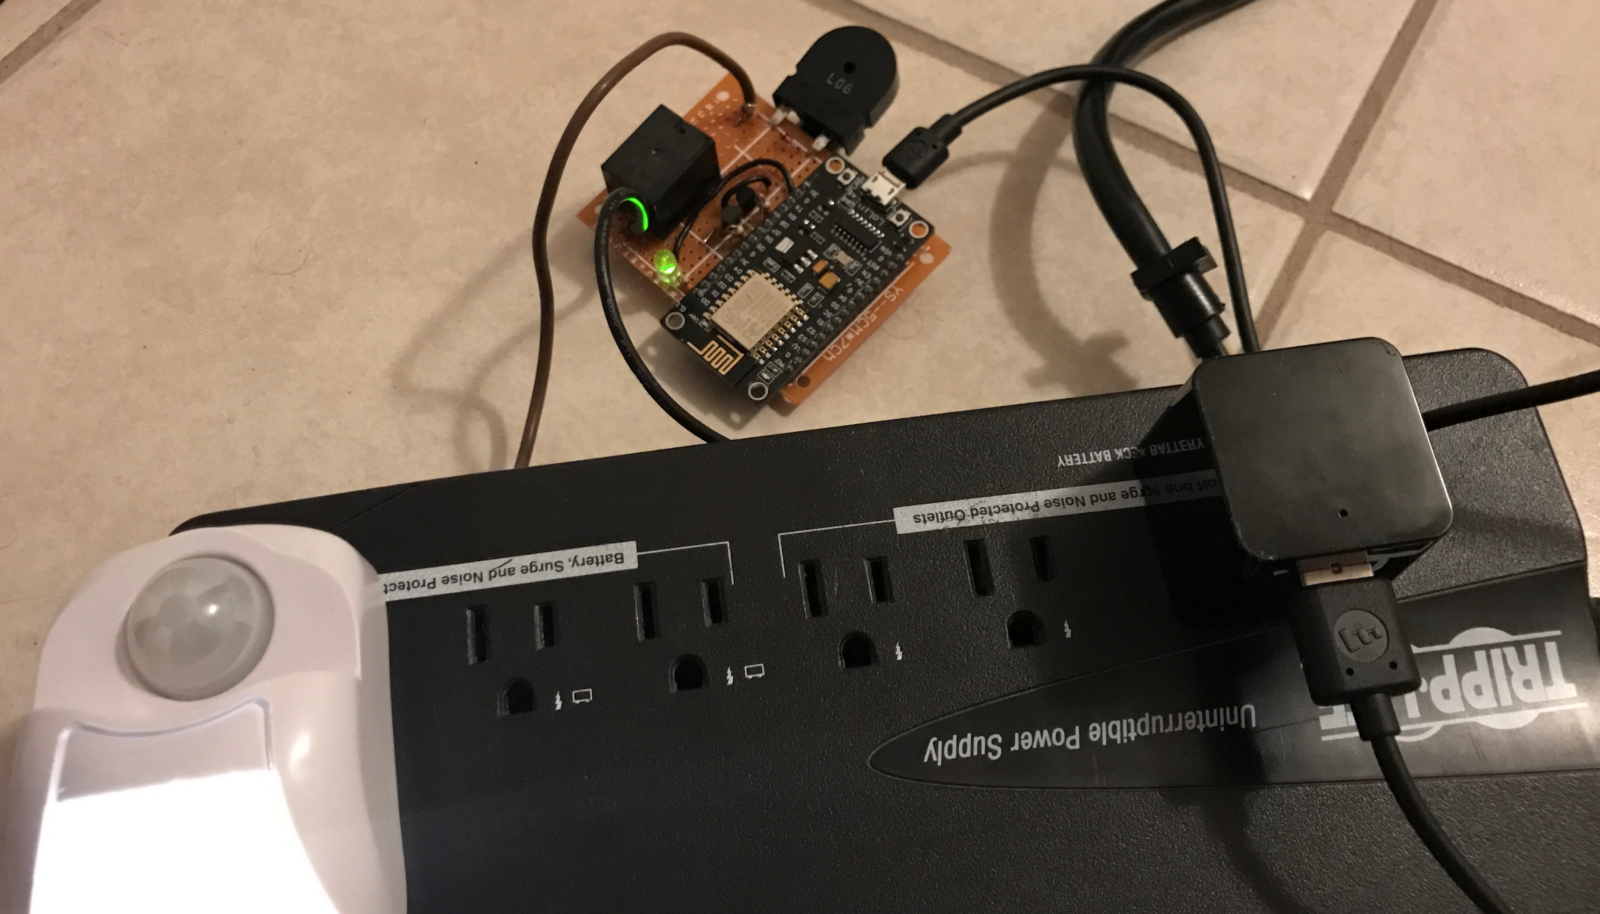 Esp8266 First Project Home Automation With Relays Switches Pwm Wiring Mainbreaker Box In Detached Garage Electrical Diy Chatroom This Could Be Used To Control For Example A Desk Lamp Connected The Ac Outlet Testing Nightlight